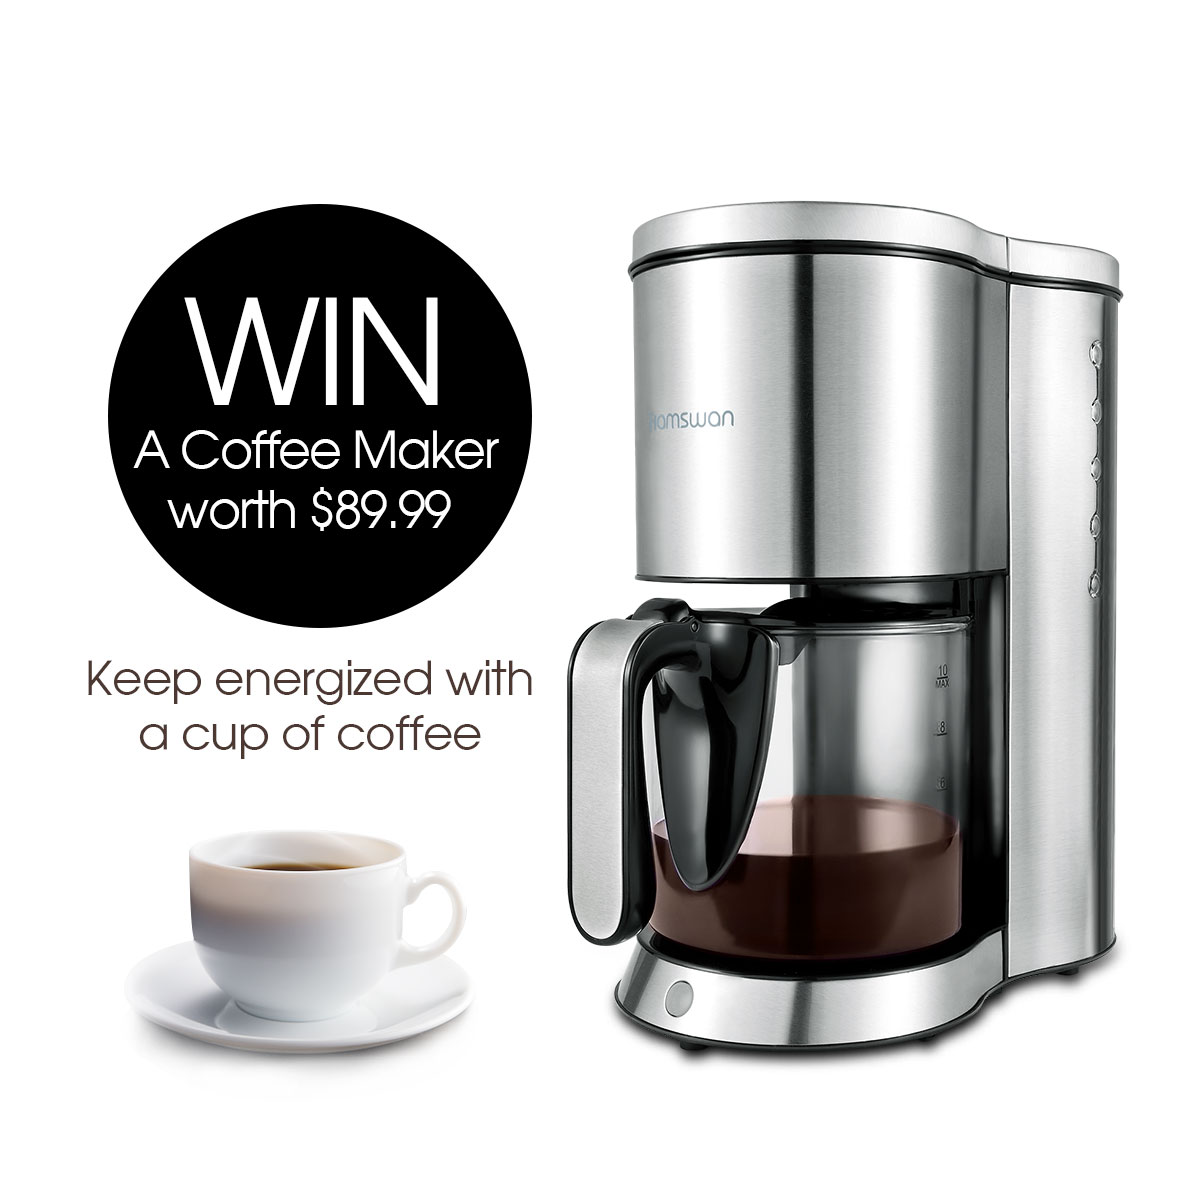 Enter for a chance to win a Coffee Maker worth $90! Giveaway Image